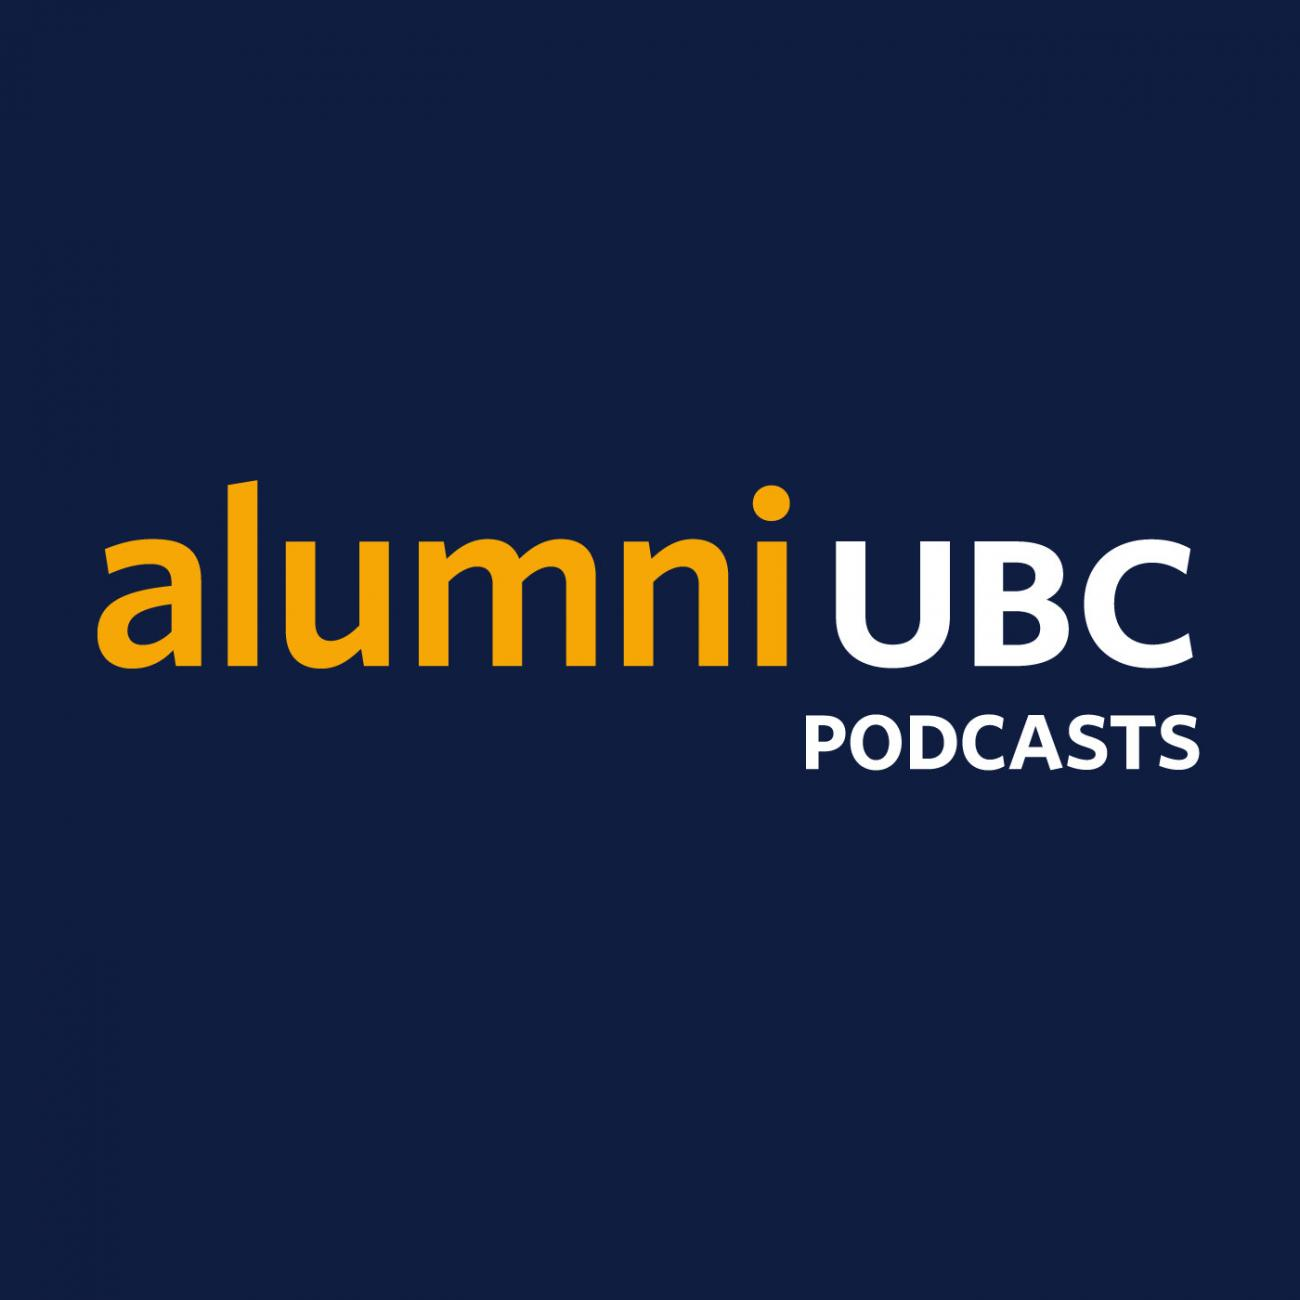 Alumni UBC Podcasts